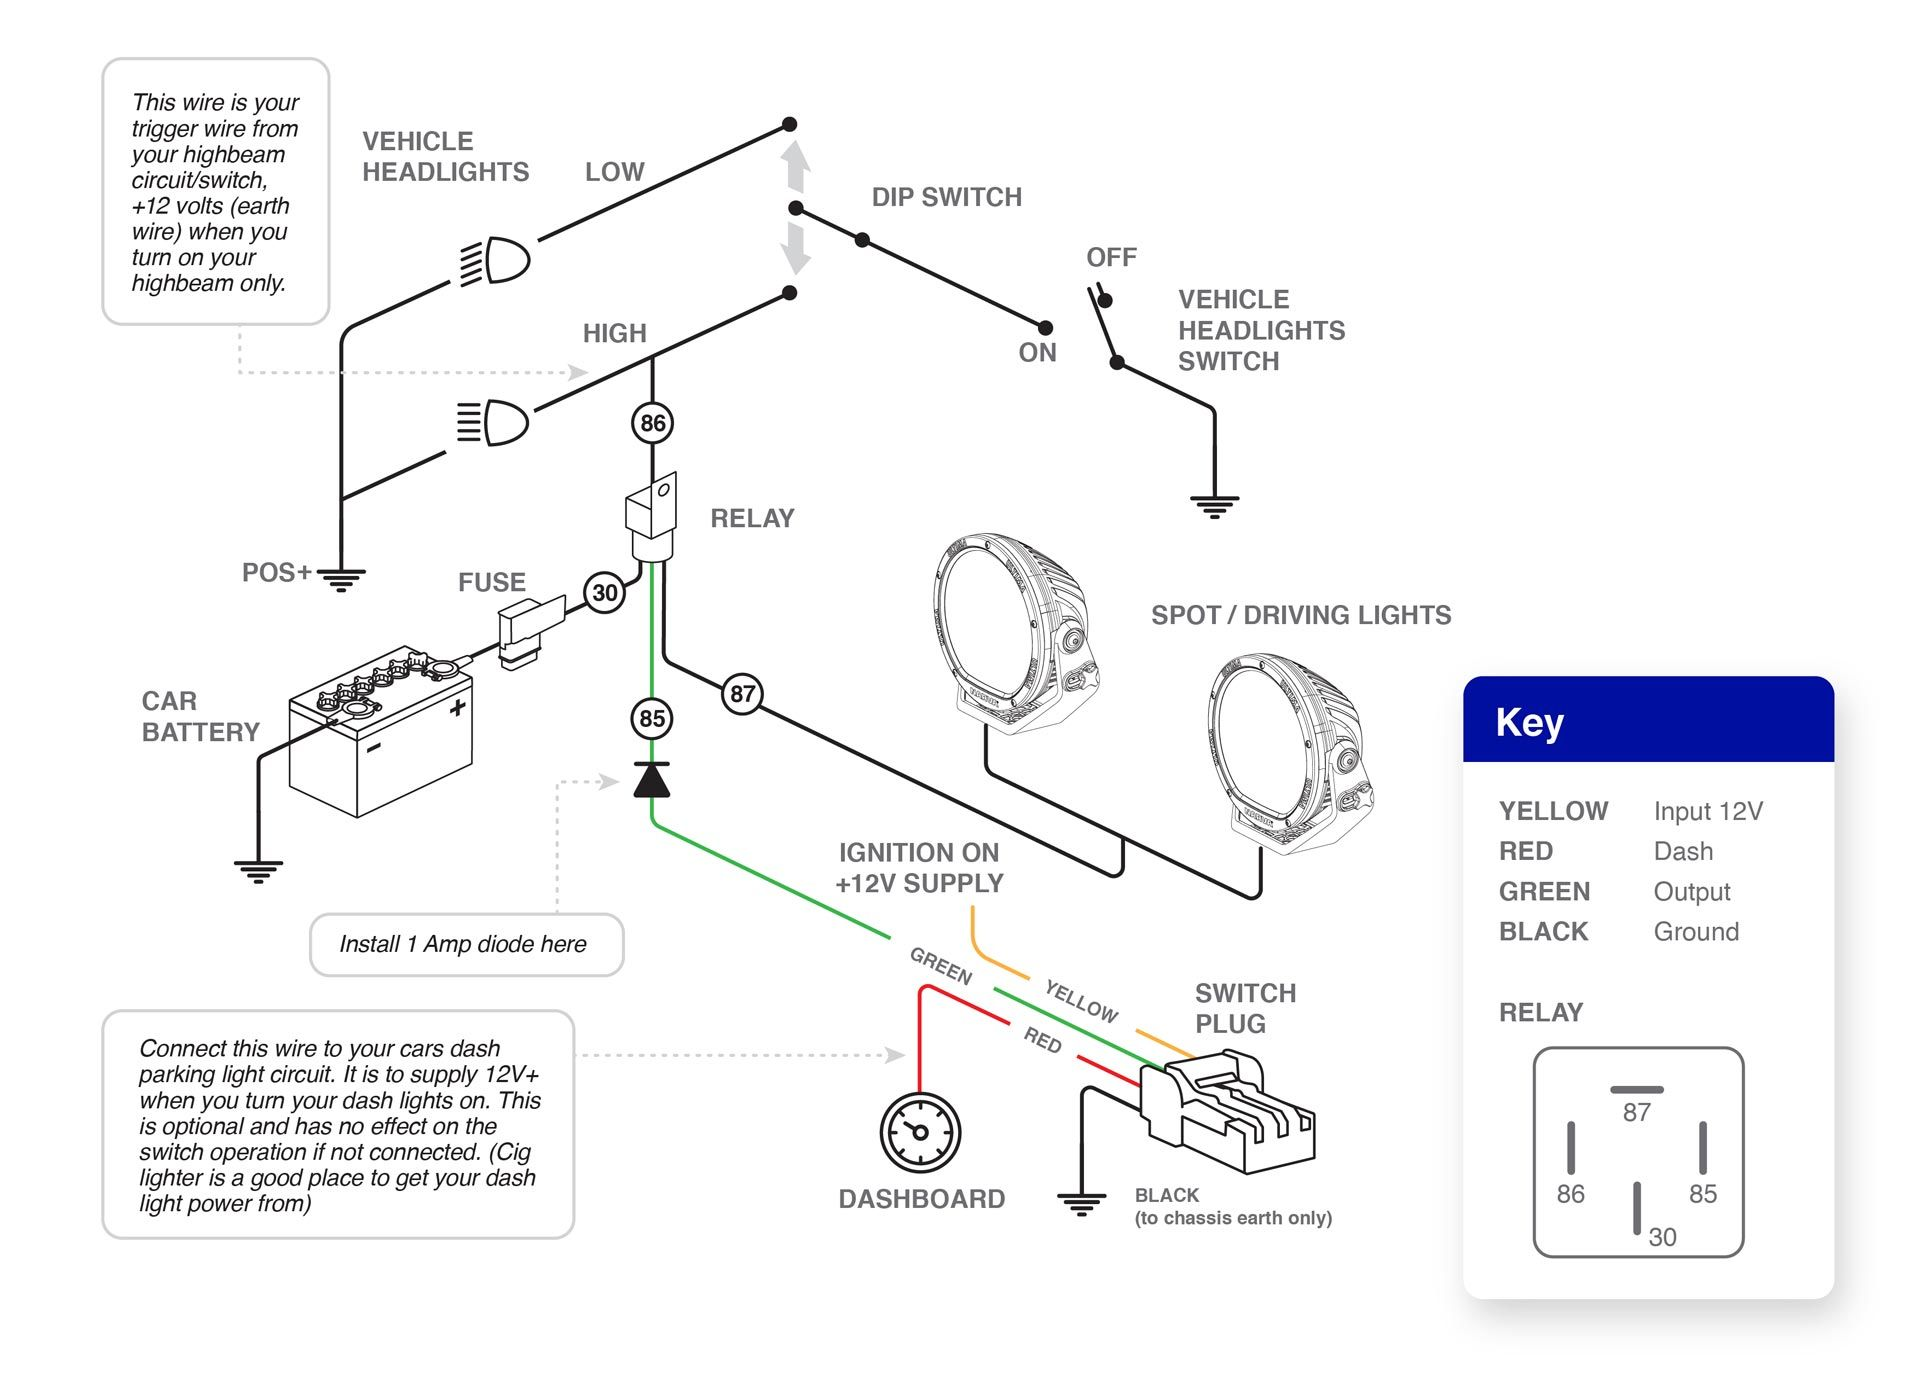 Switch wiring diagram for negative switched Nissan vehicles (refer to Nissan model)